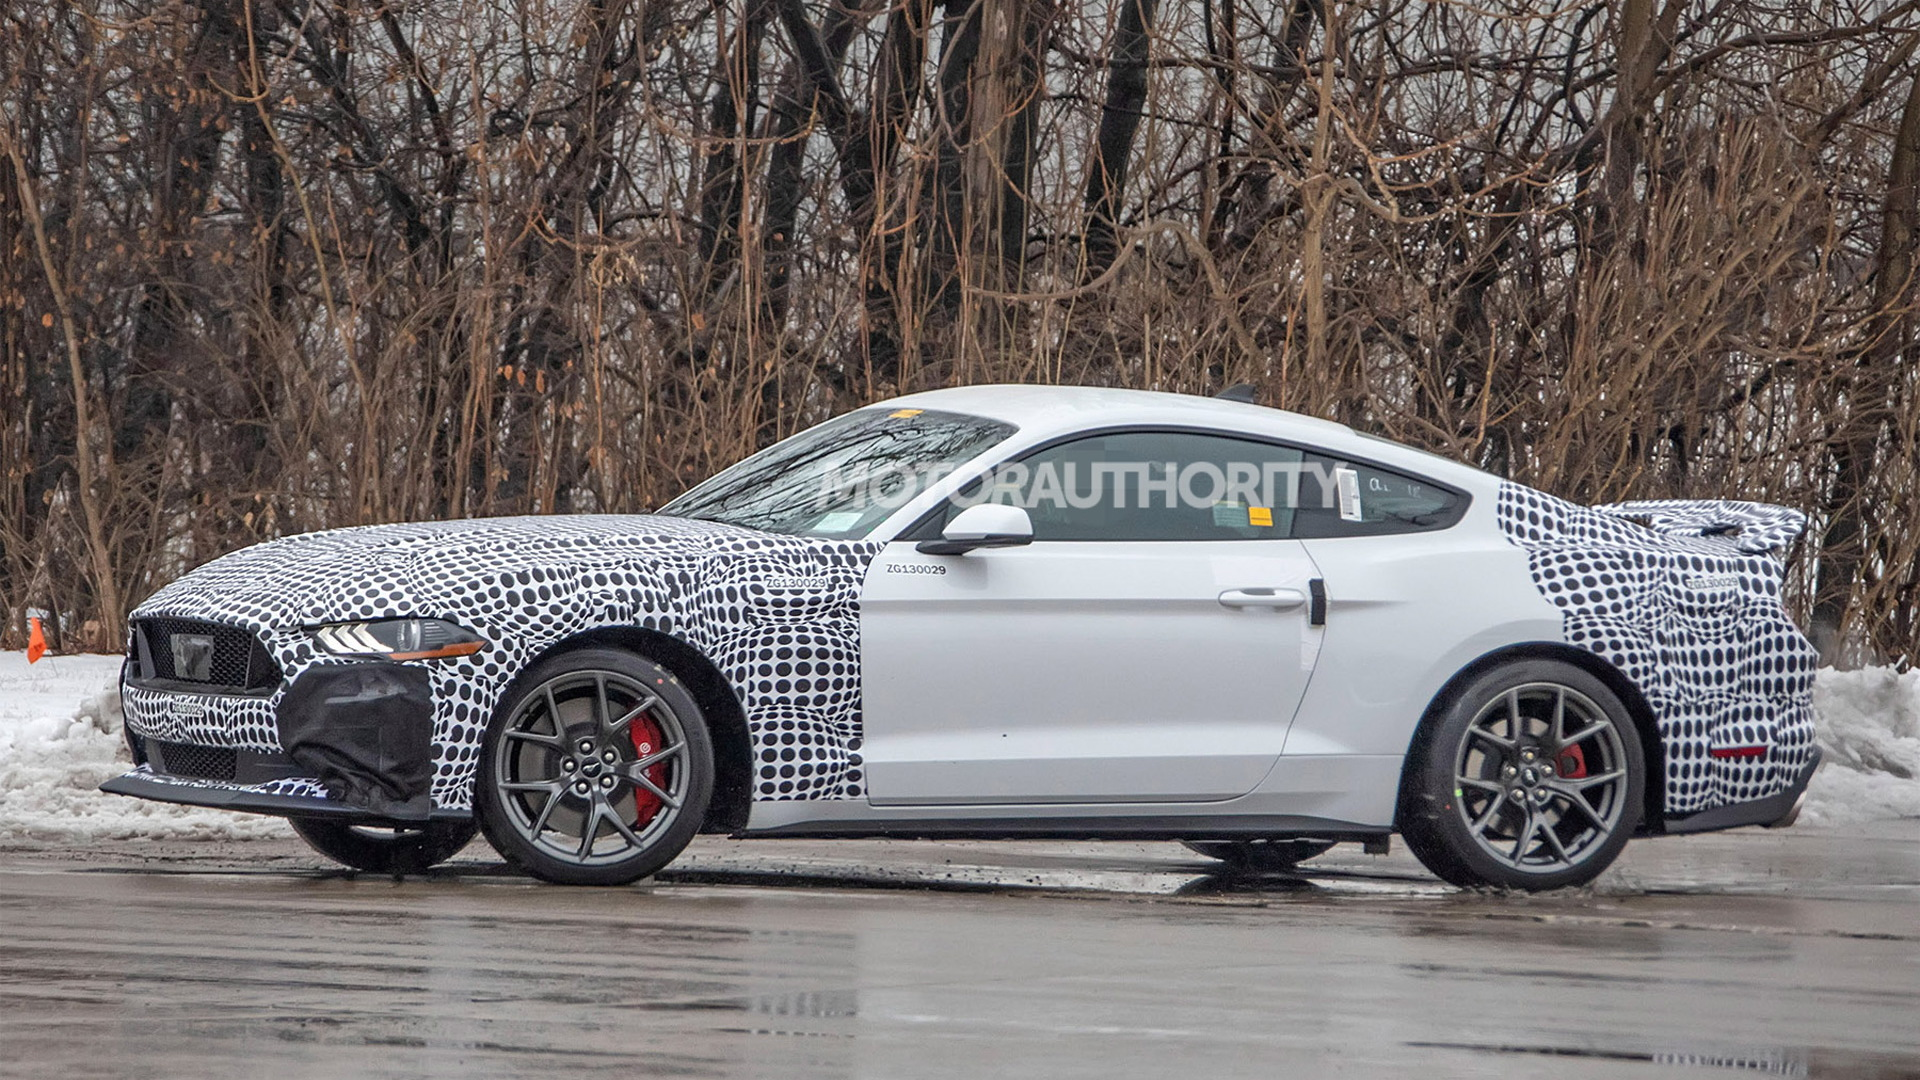 2021 Ford Mustang Mach 1 spy shots - Photo credit: S. Baldauf/SB-Medien